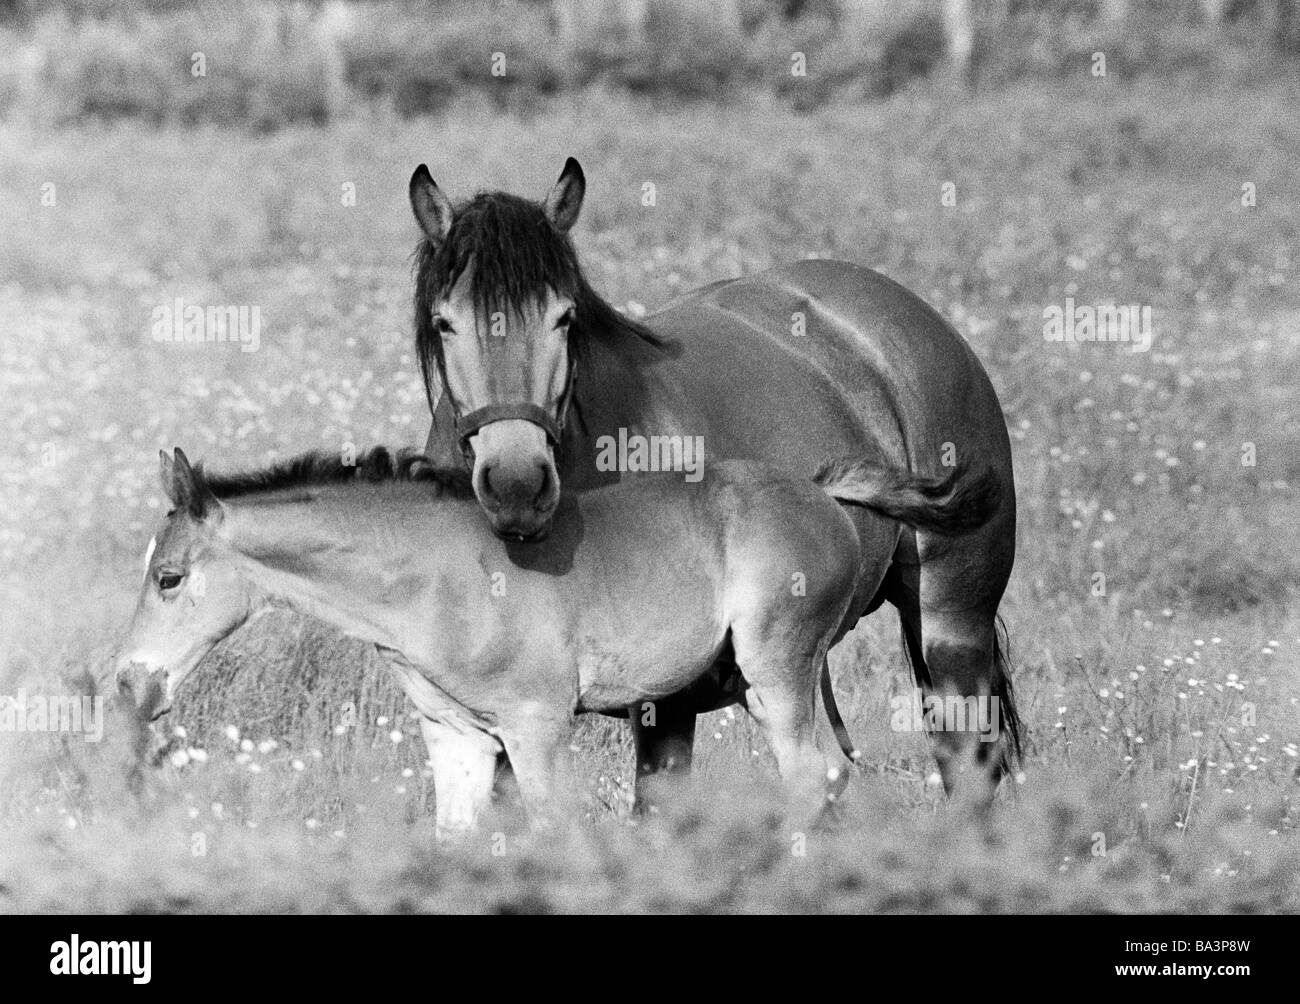 black and white photo, nature, animal world, horse with foal, Equus ferus caballus - Stock Image